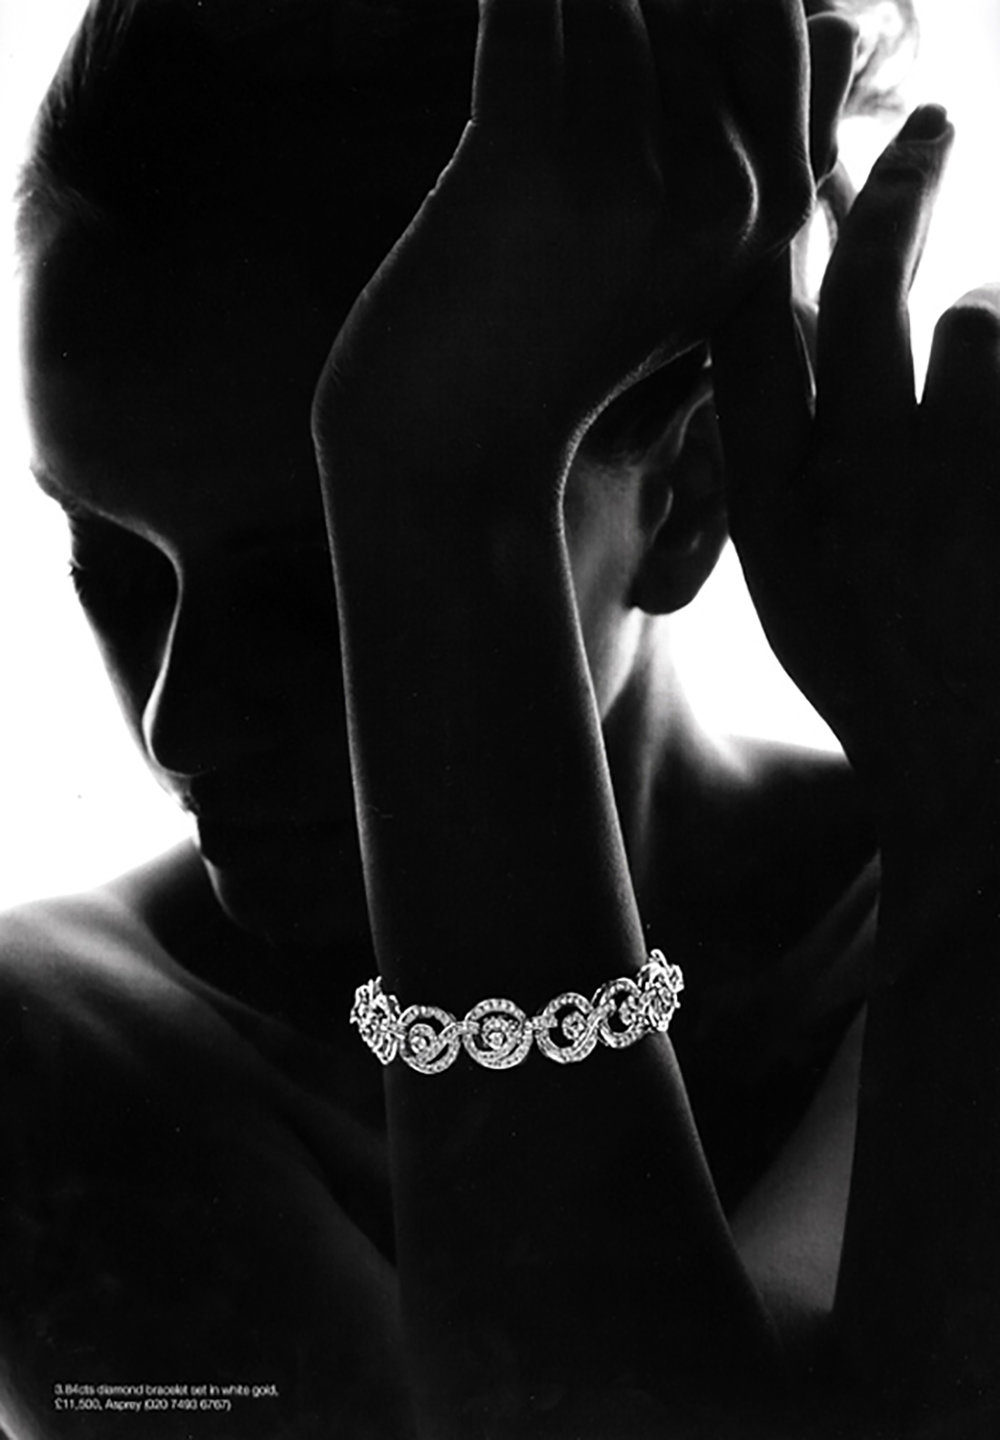 jewelery bw girl glamour